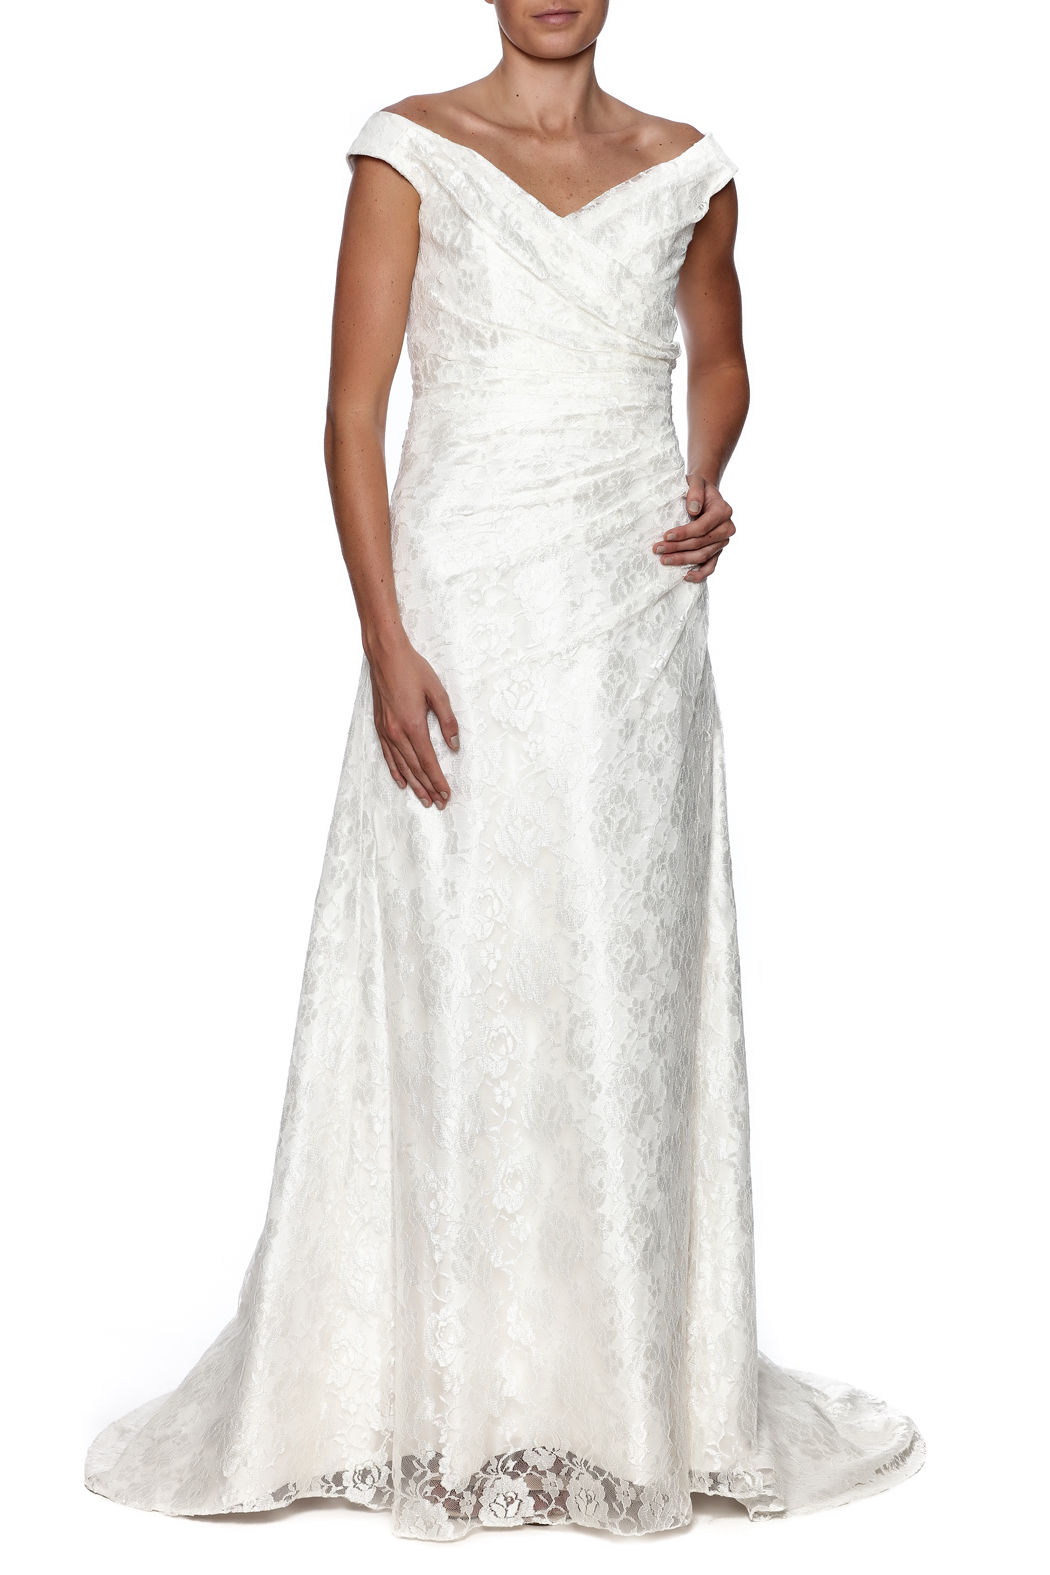 Cicada Lace Heather Gown - Main Image